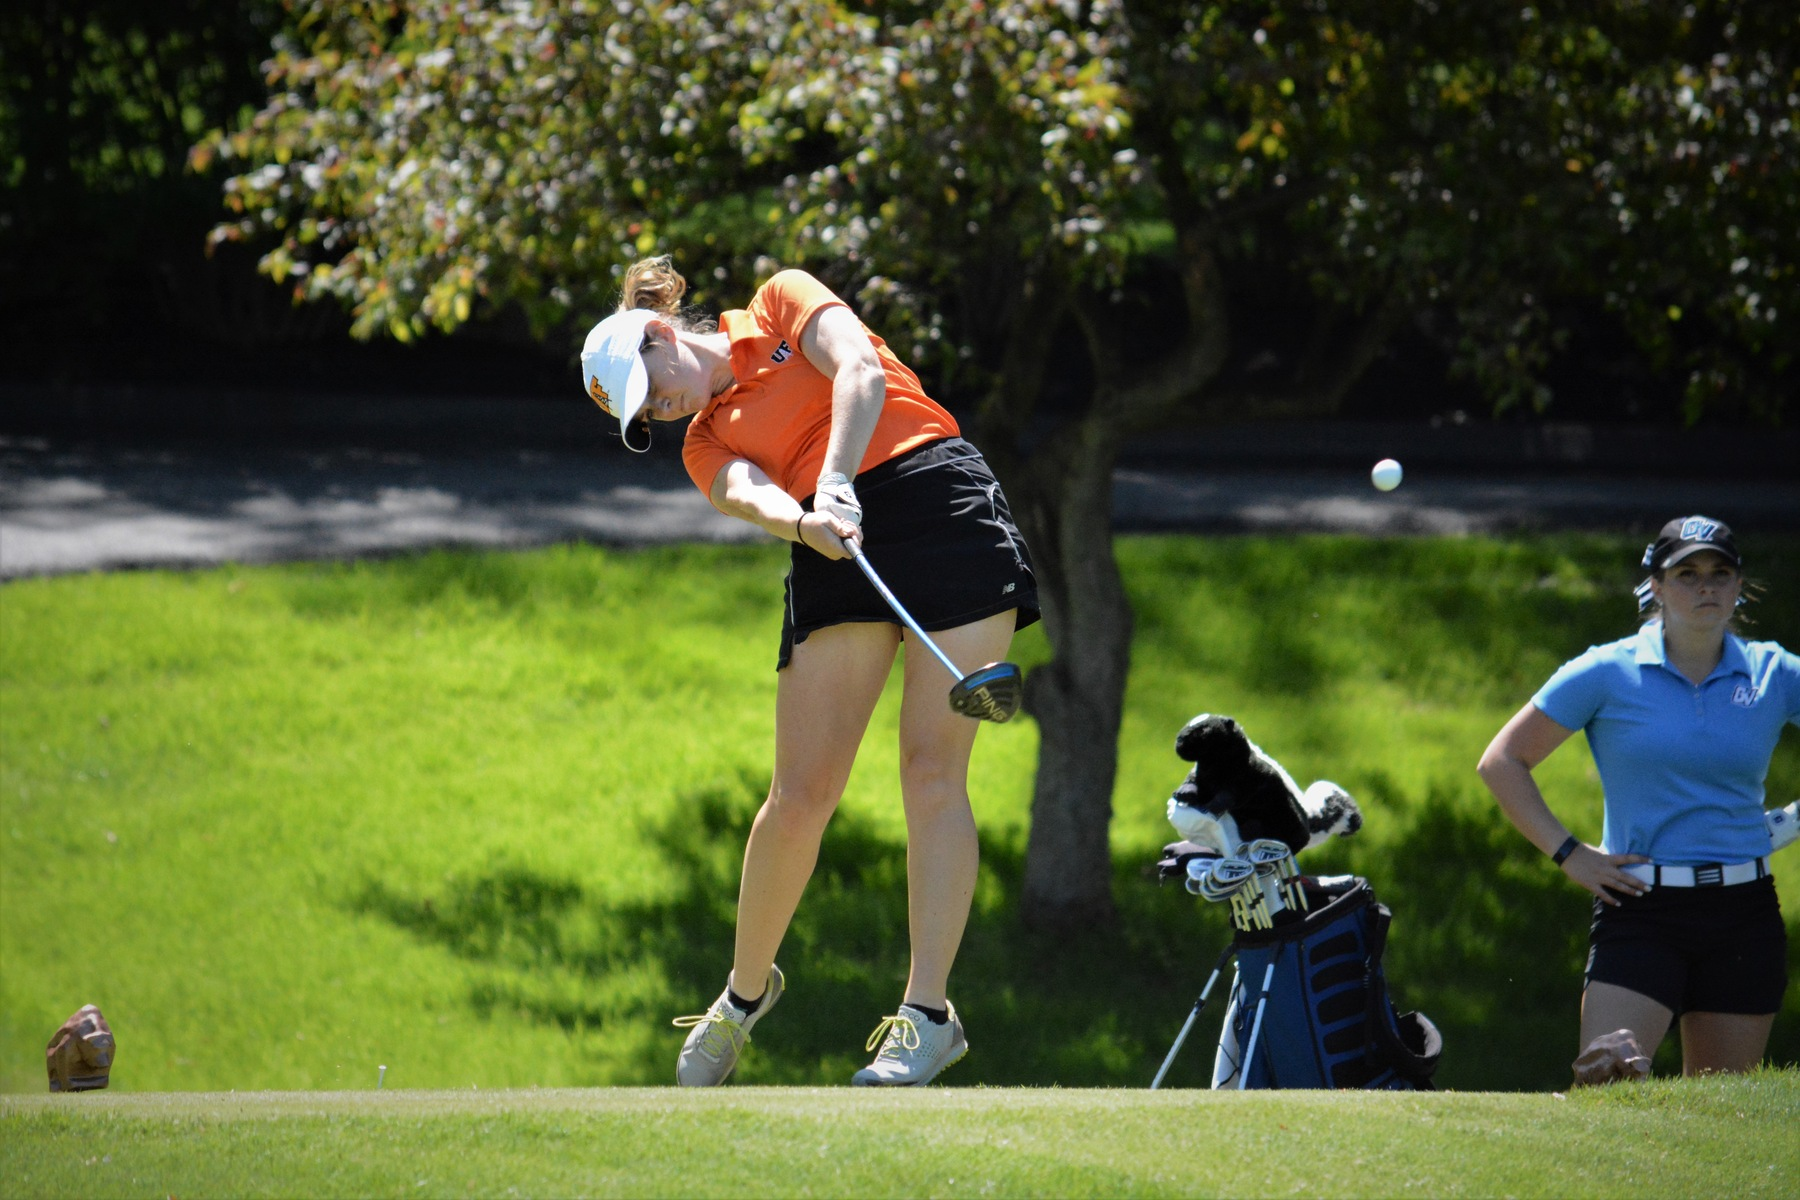 Oilers Fall to Fourth After Round 2 at East Regional